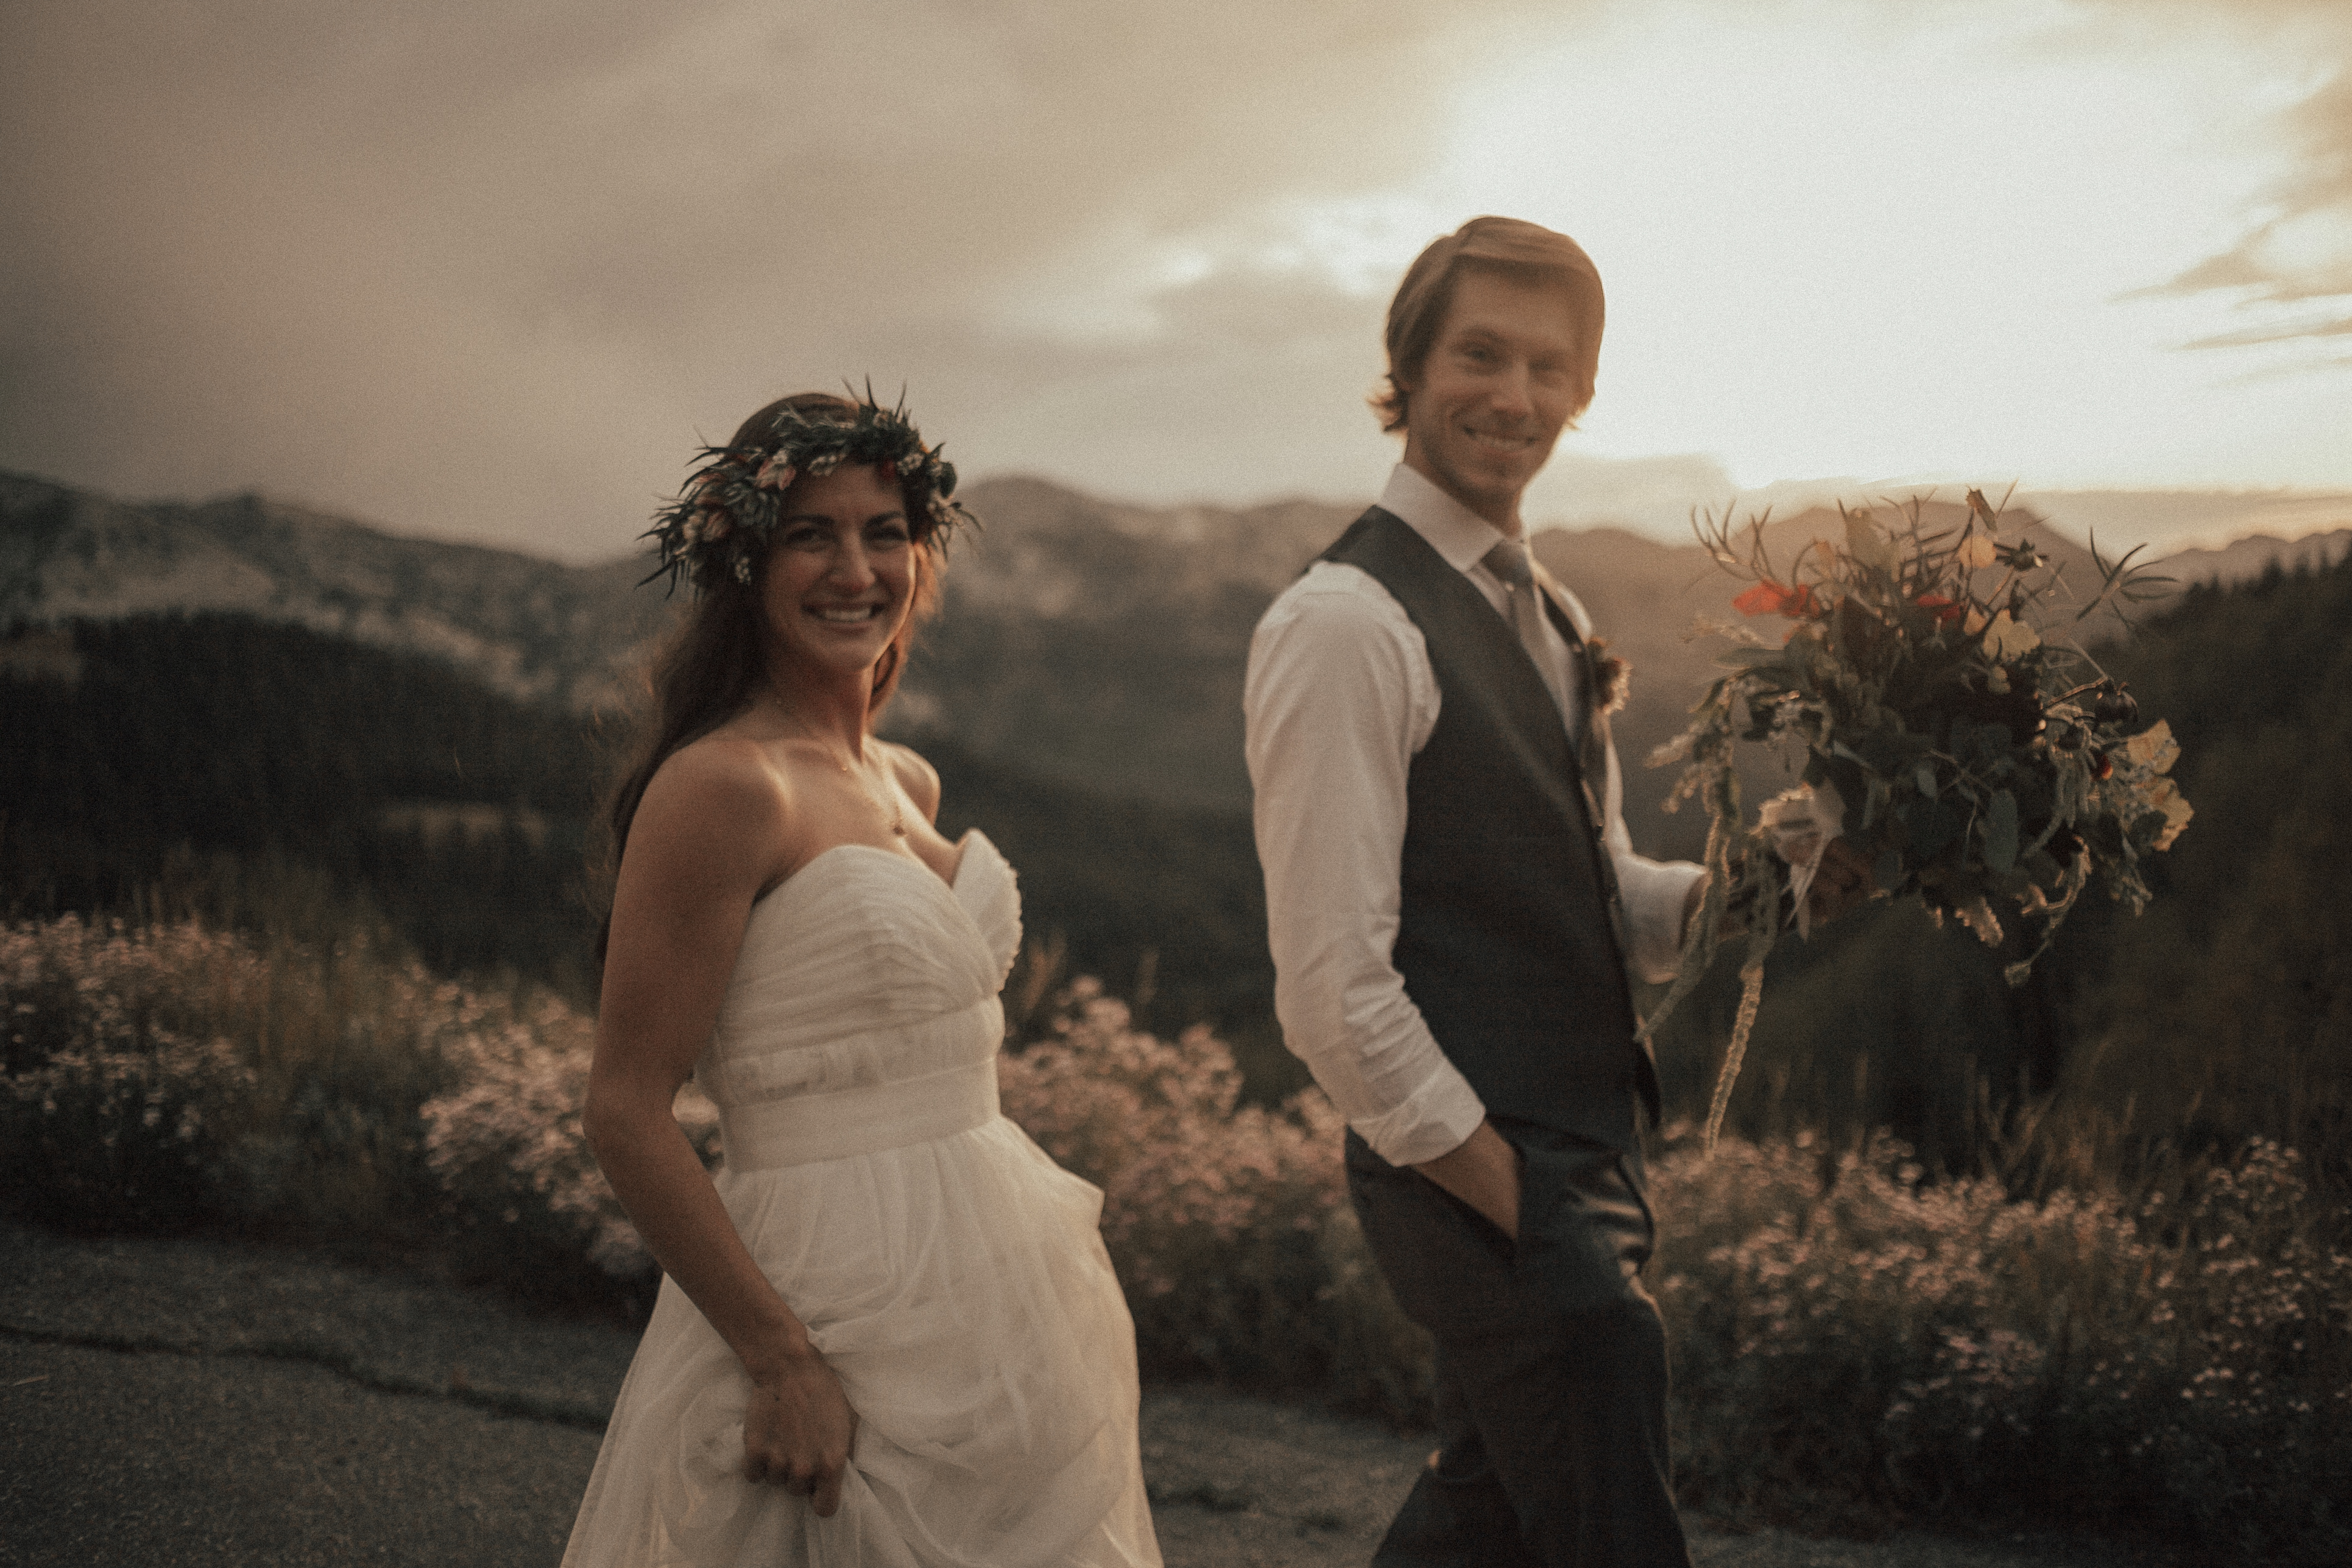 Solitude Mountain Resort Wedding Utah Salt Lake City Green Wedding Shoes Bohemian Bride Moss Flower Shop Tyler Texas Sunset Adventure Elopement Green Wedding Shoes